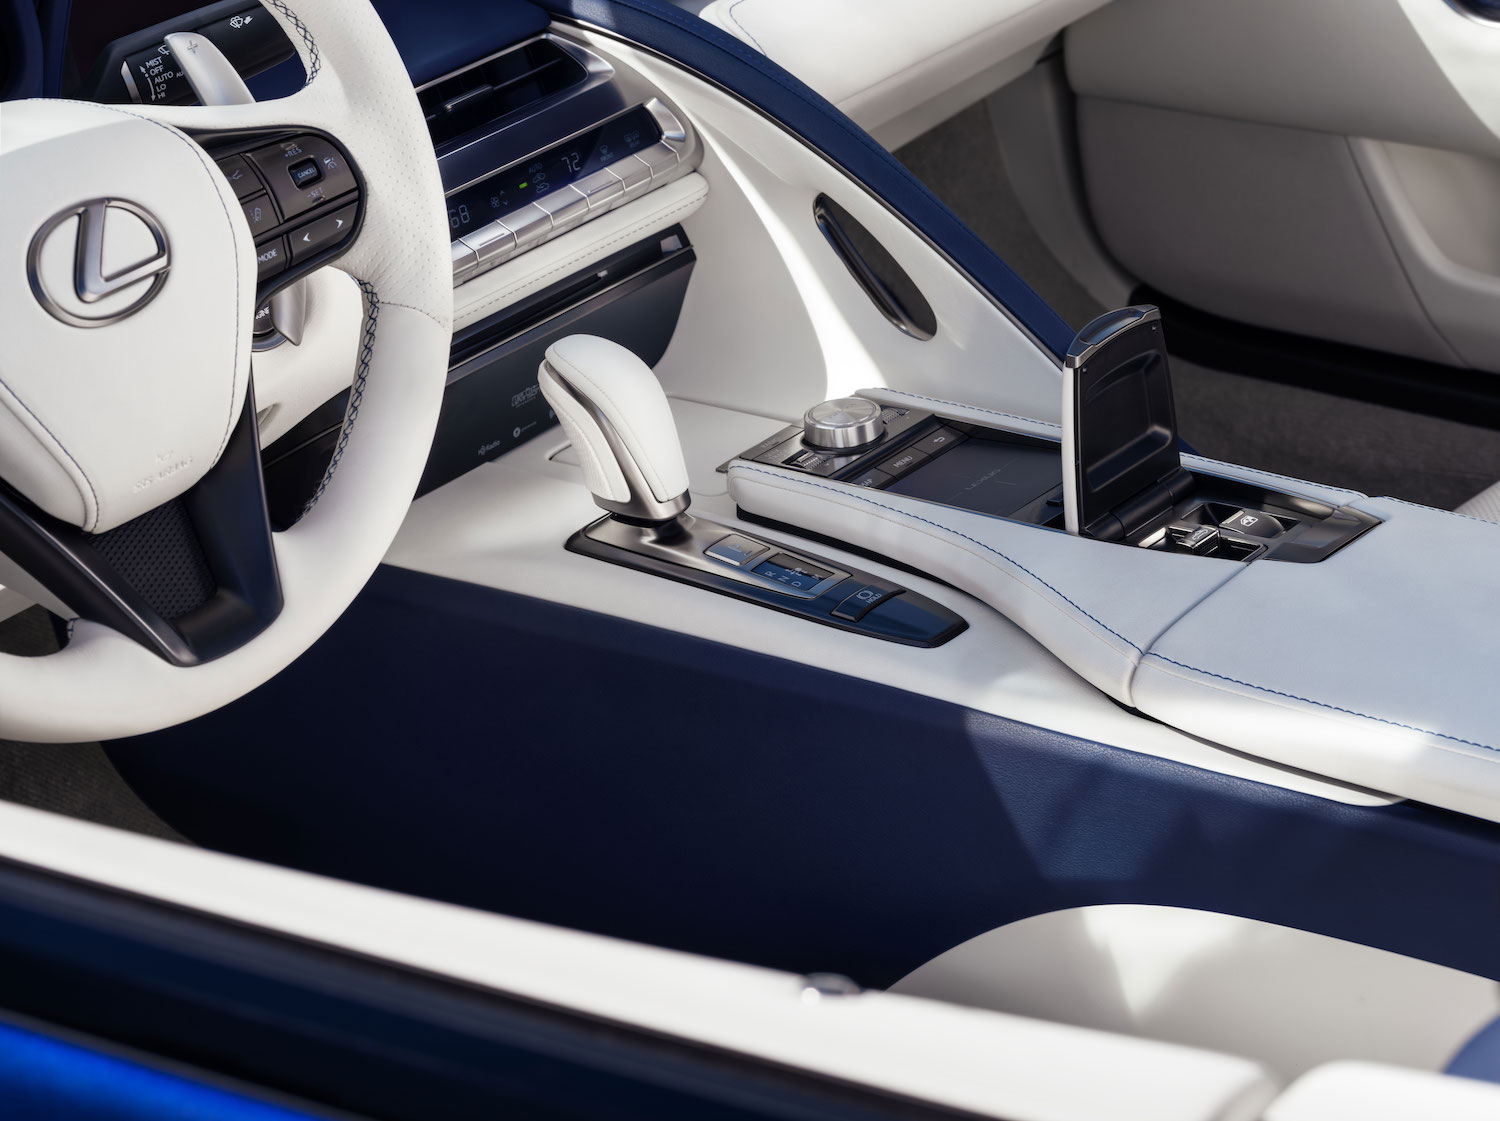 interior center console and shifter close-up